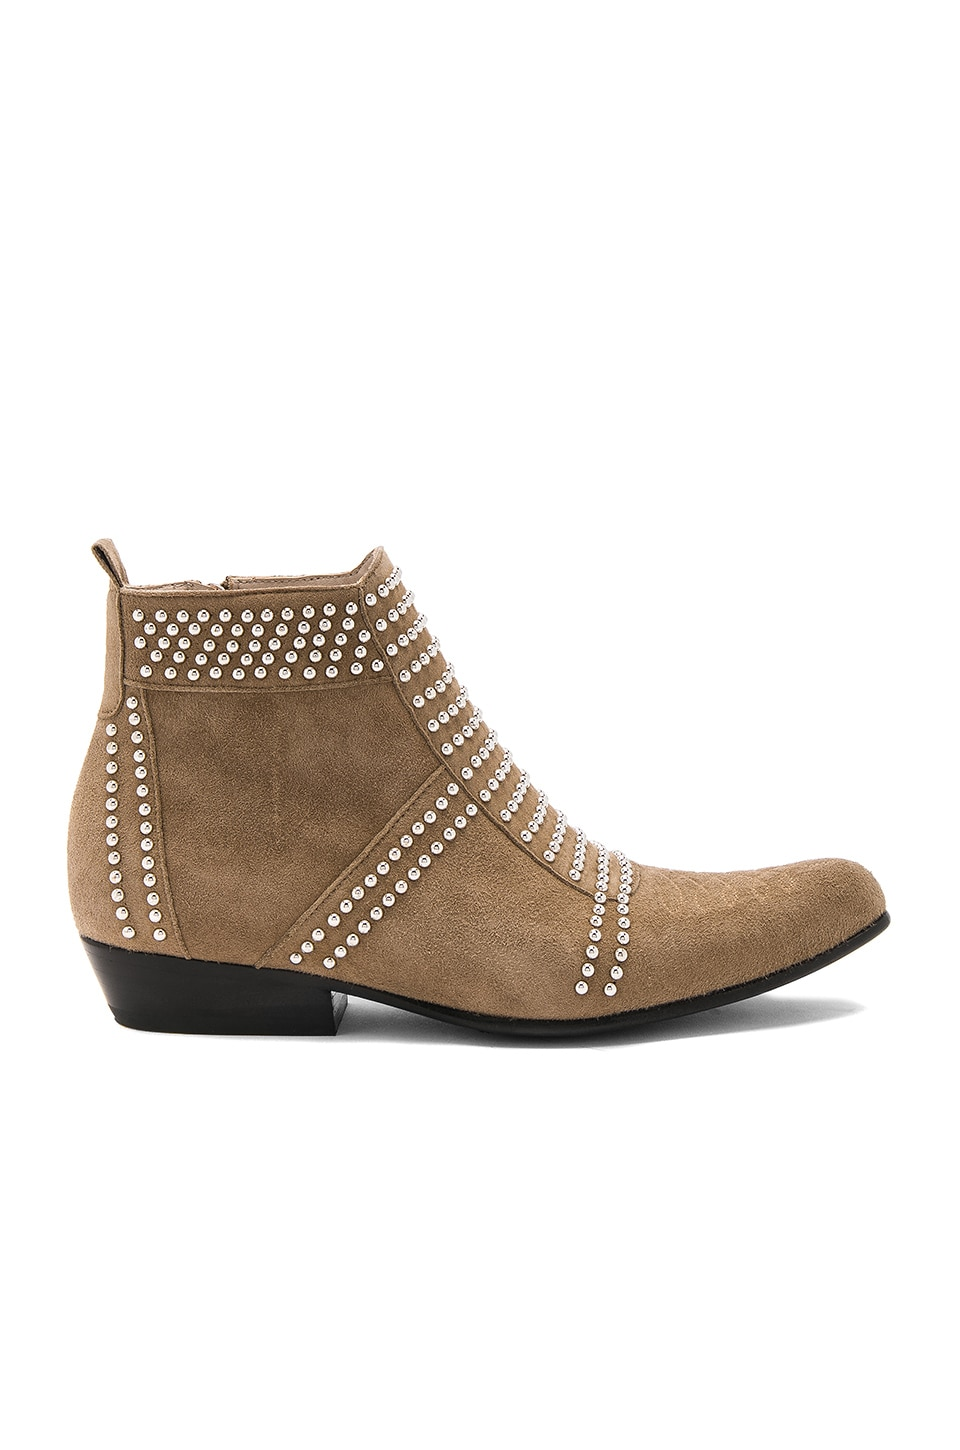 Charlie Bootie by ANINE BING